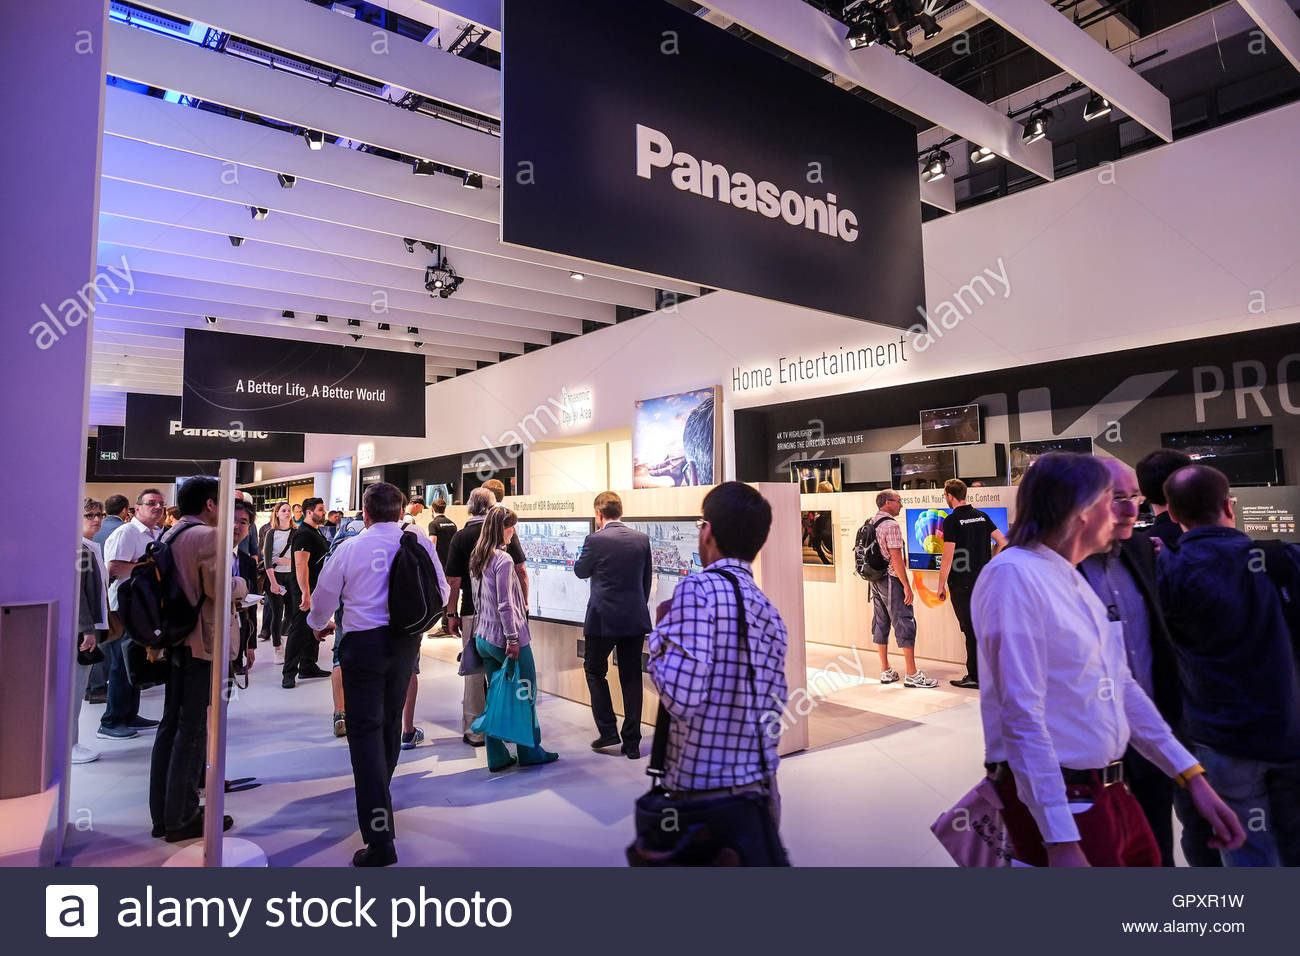 Panasonic exhibition at IFA 2016 in Berlin - Stock Image